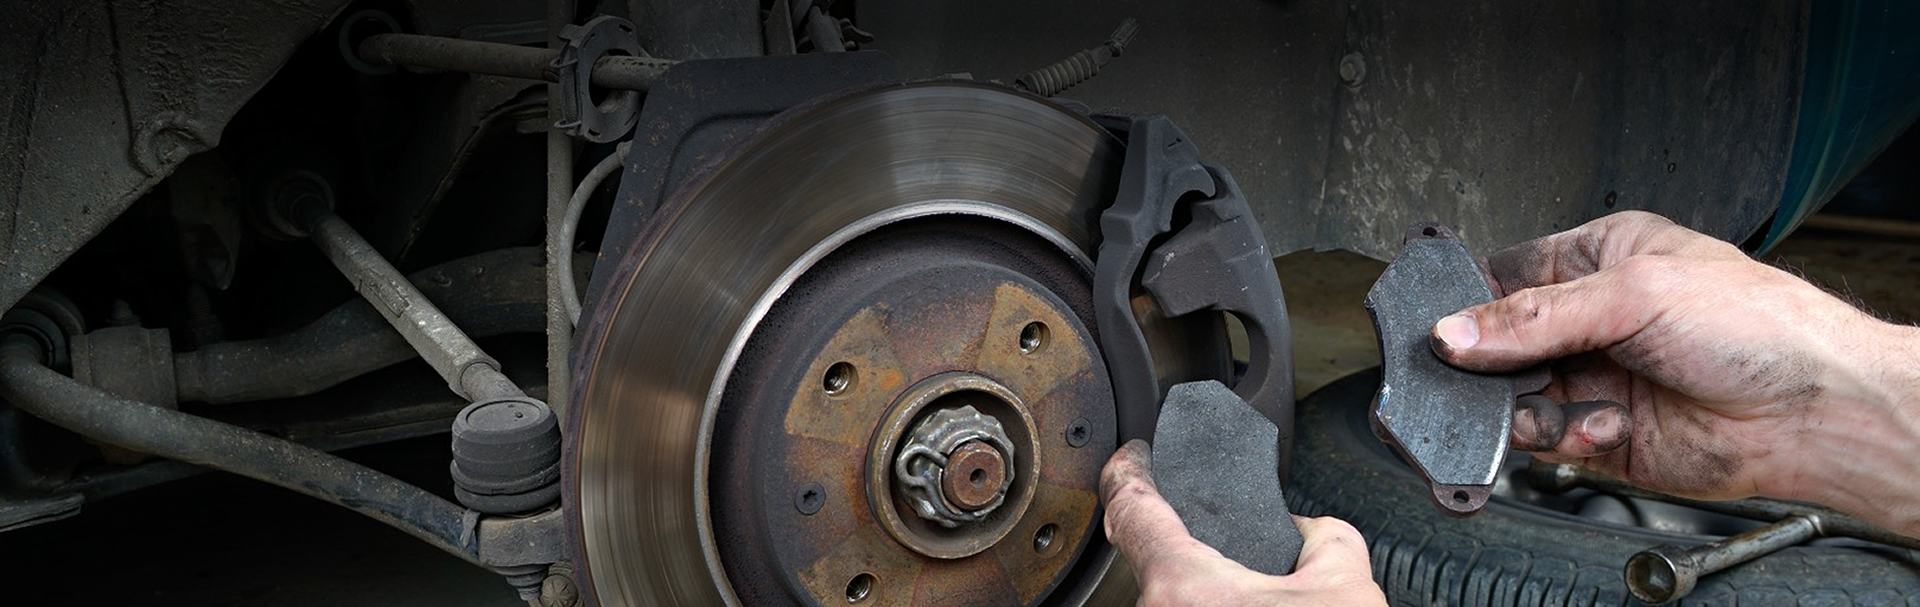 brake repairs for a car tyre